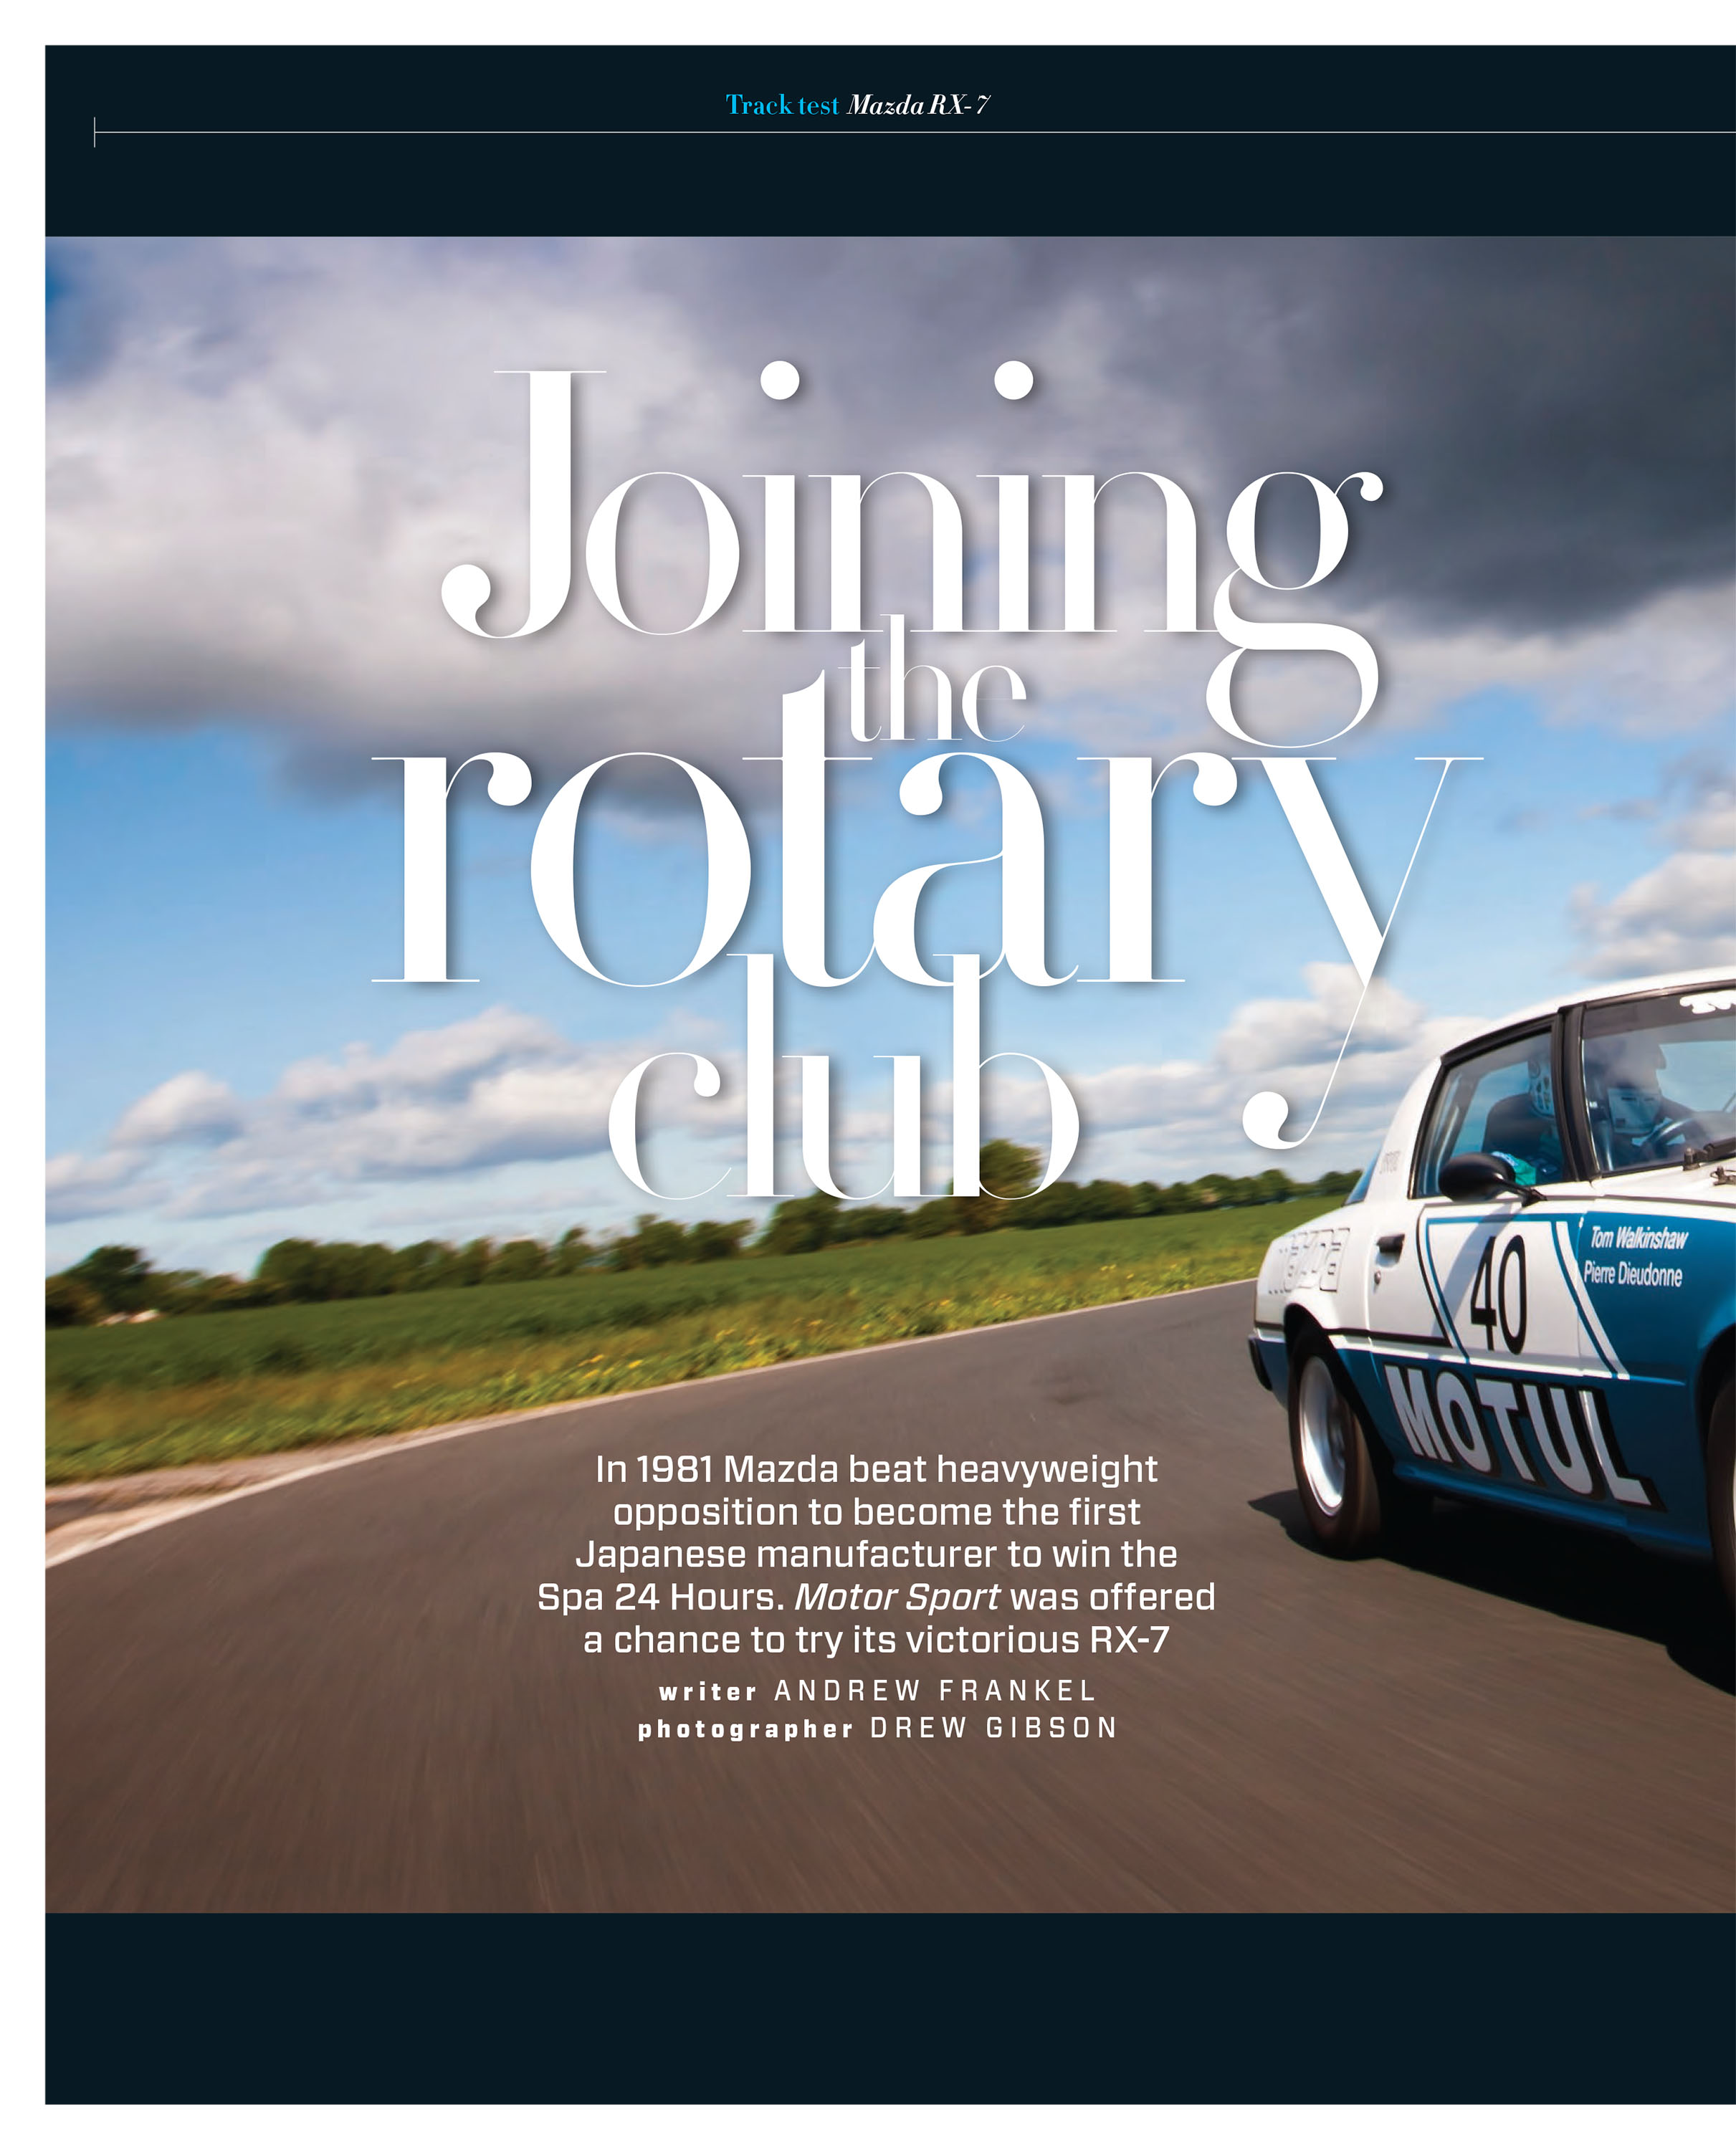 Joining the rotary club image